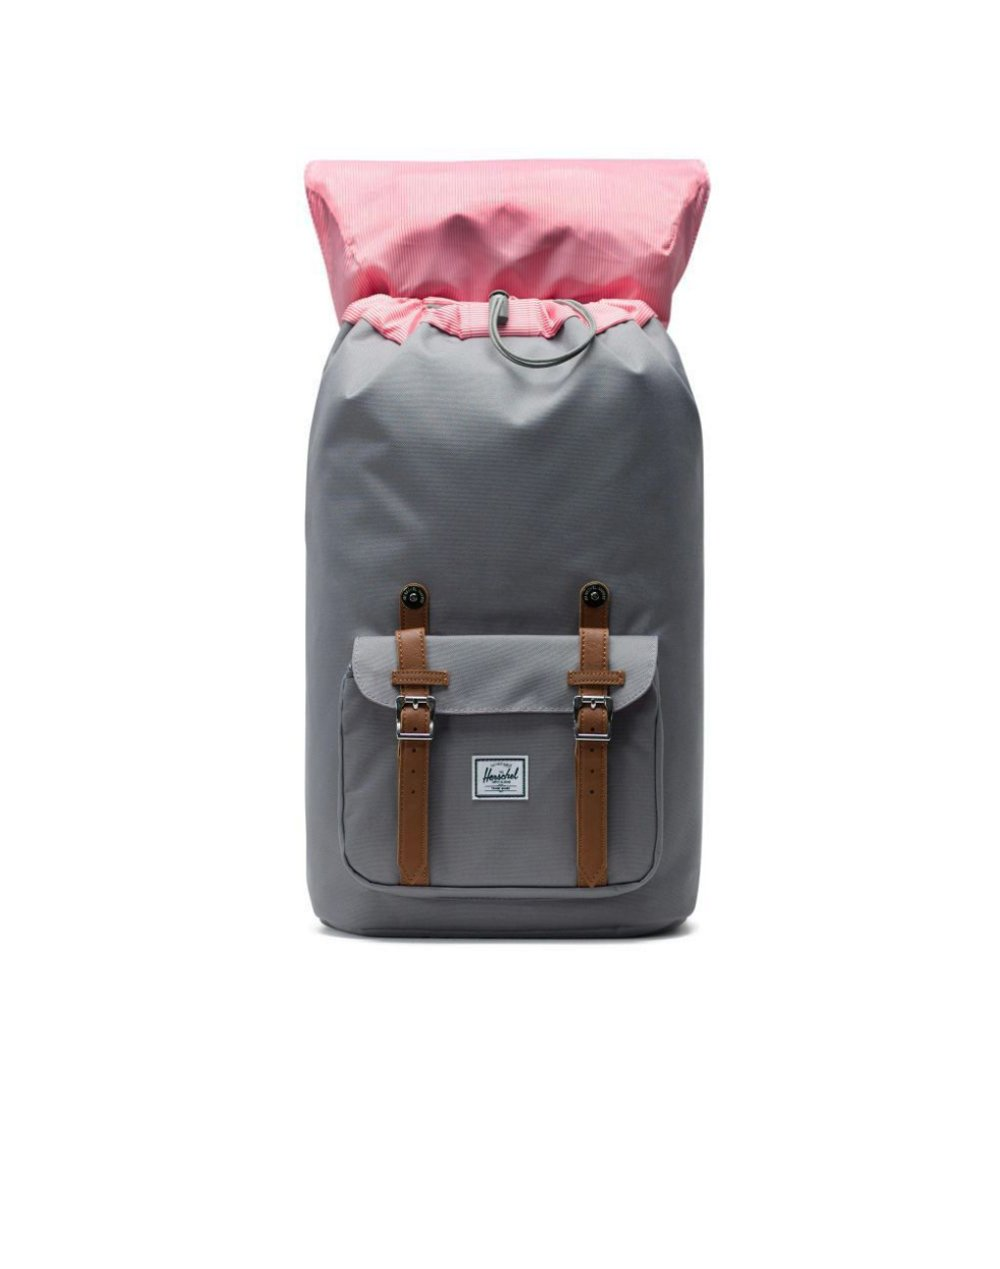 Herschel Supply Co Little America 25L (10014-00006) Grey/Tan Synthetic Leather